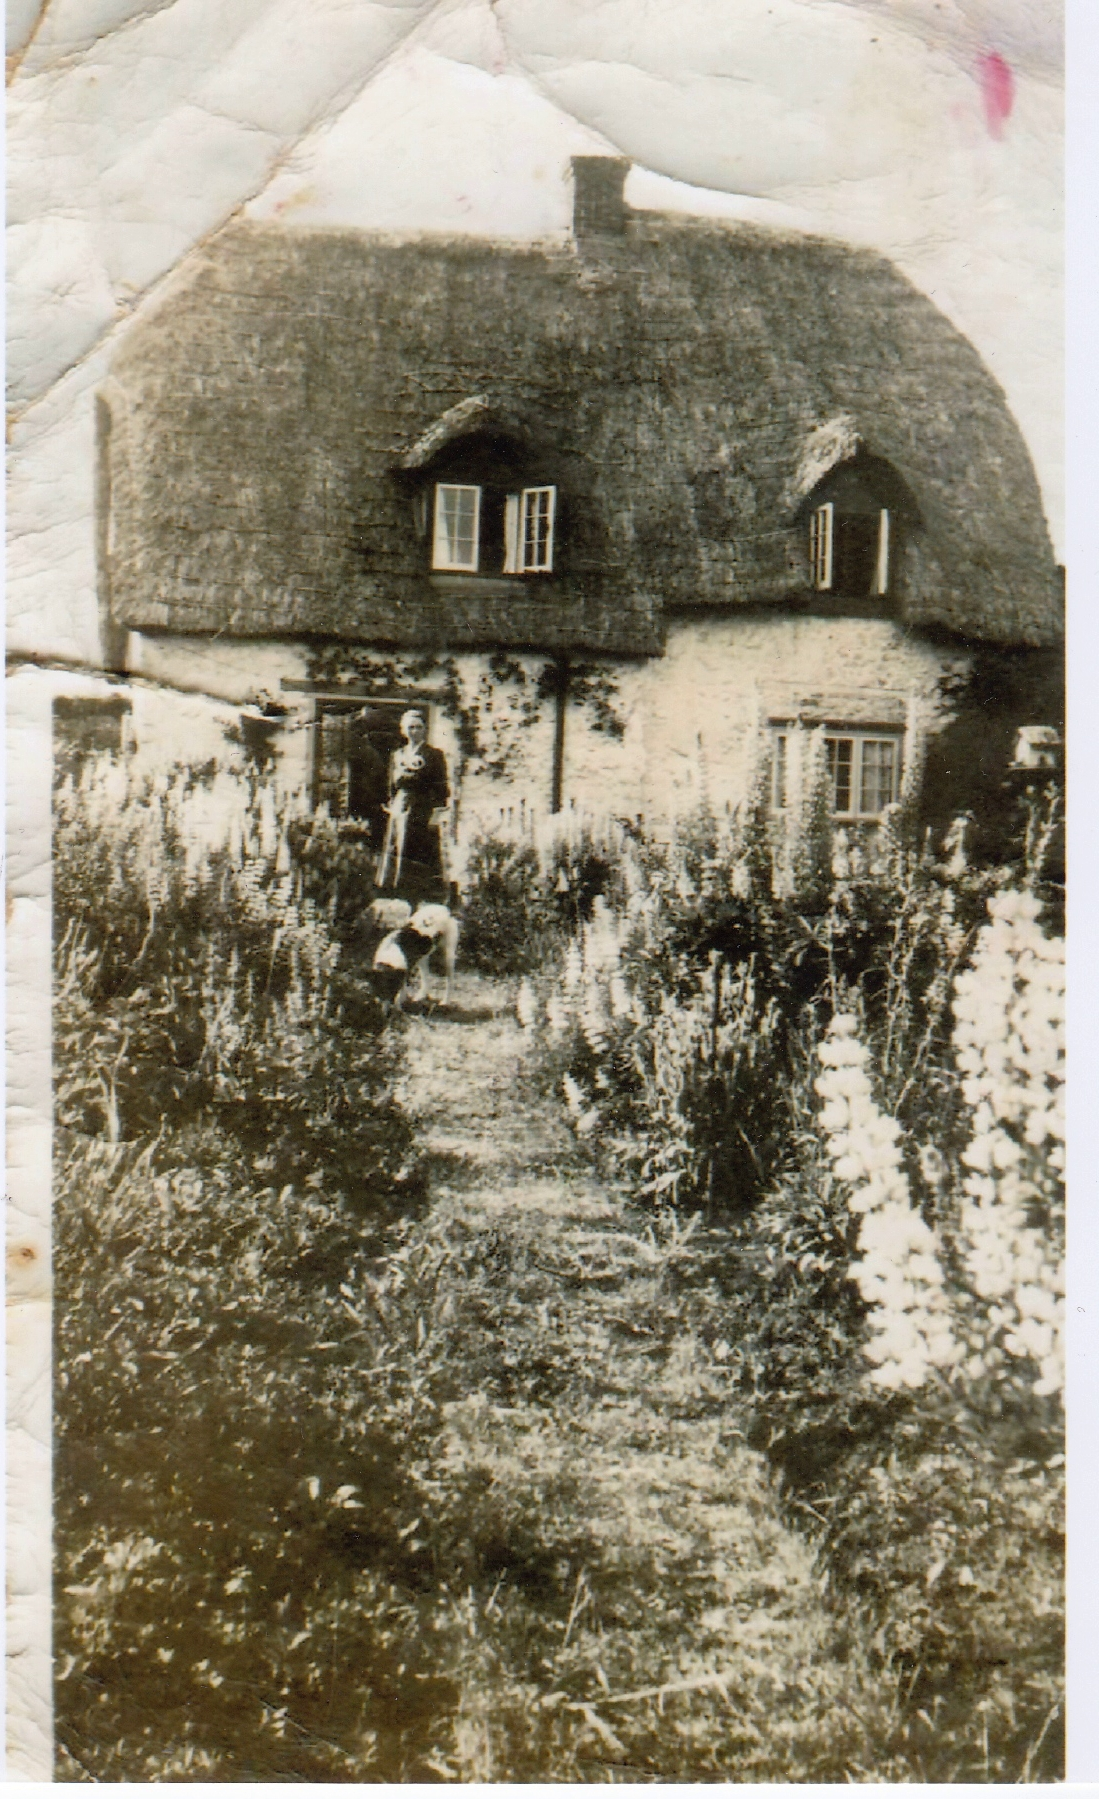 May Tree Cottage in 1938/9, the possession of the Kindertransport Girl